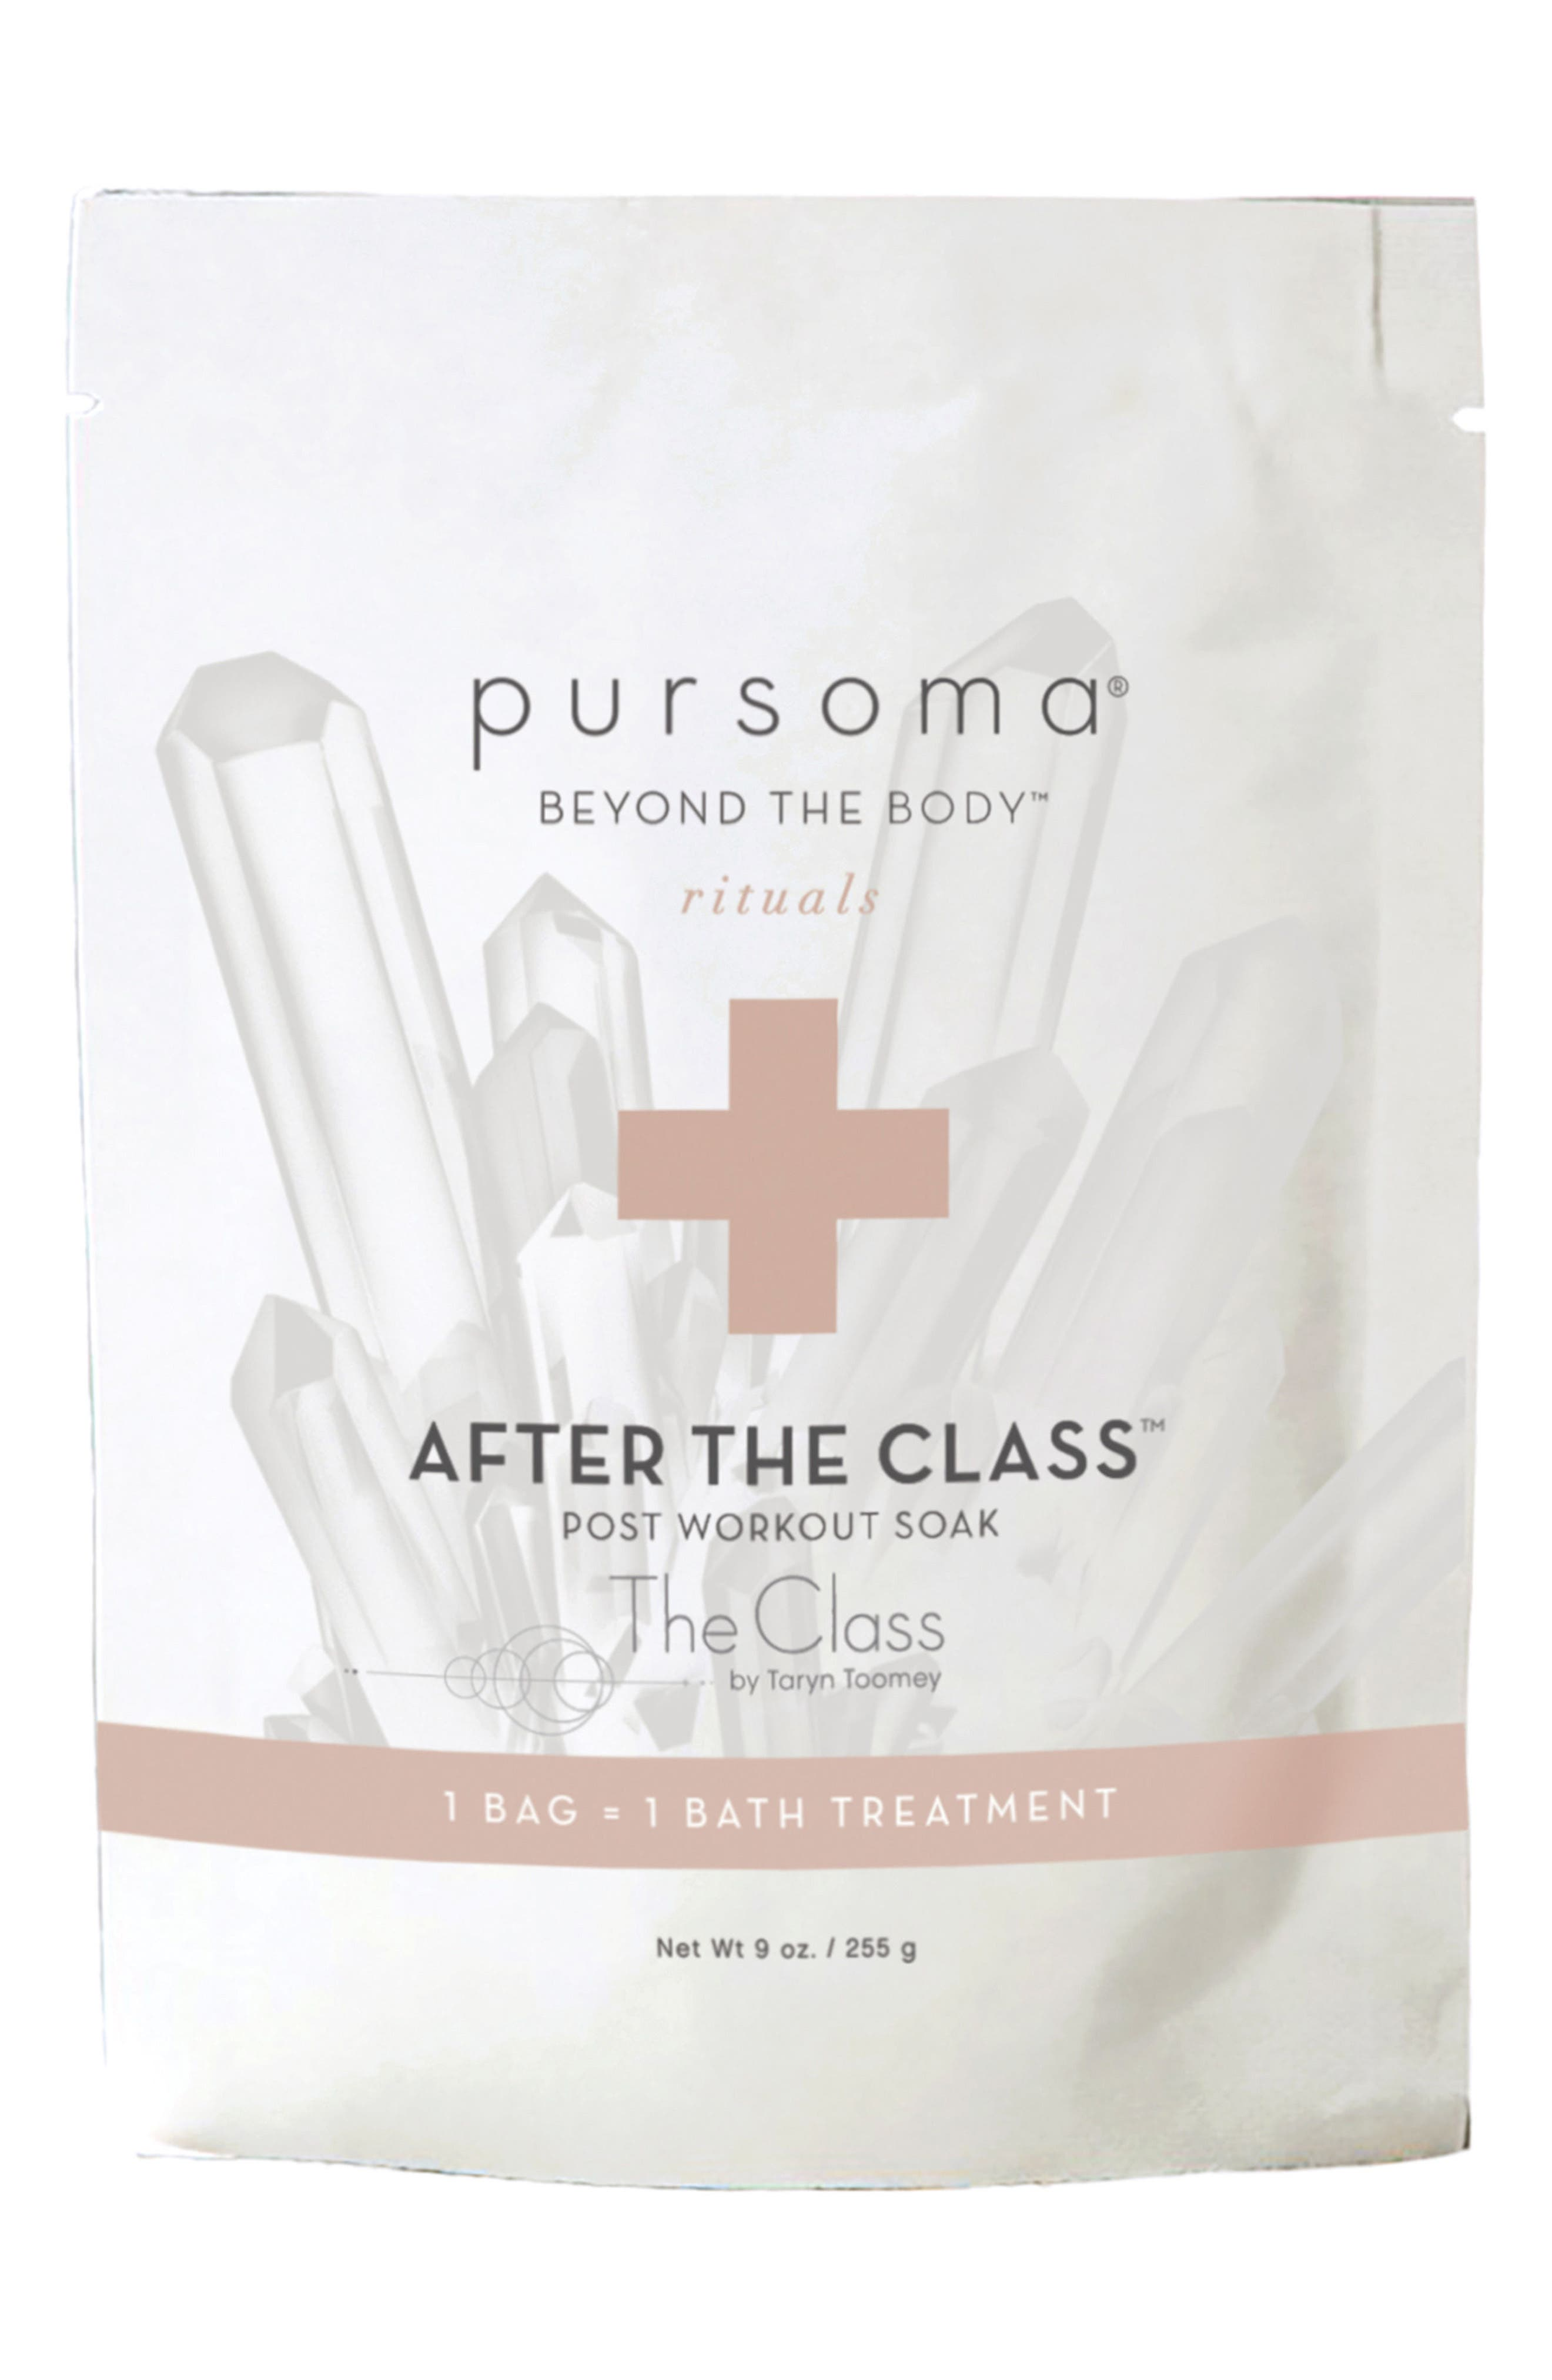 Alternate Image 1 Selected - Pursoma After the Class Post Workout Soak